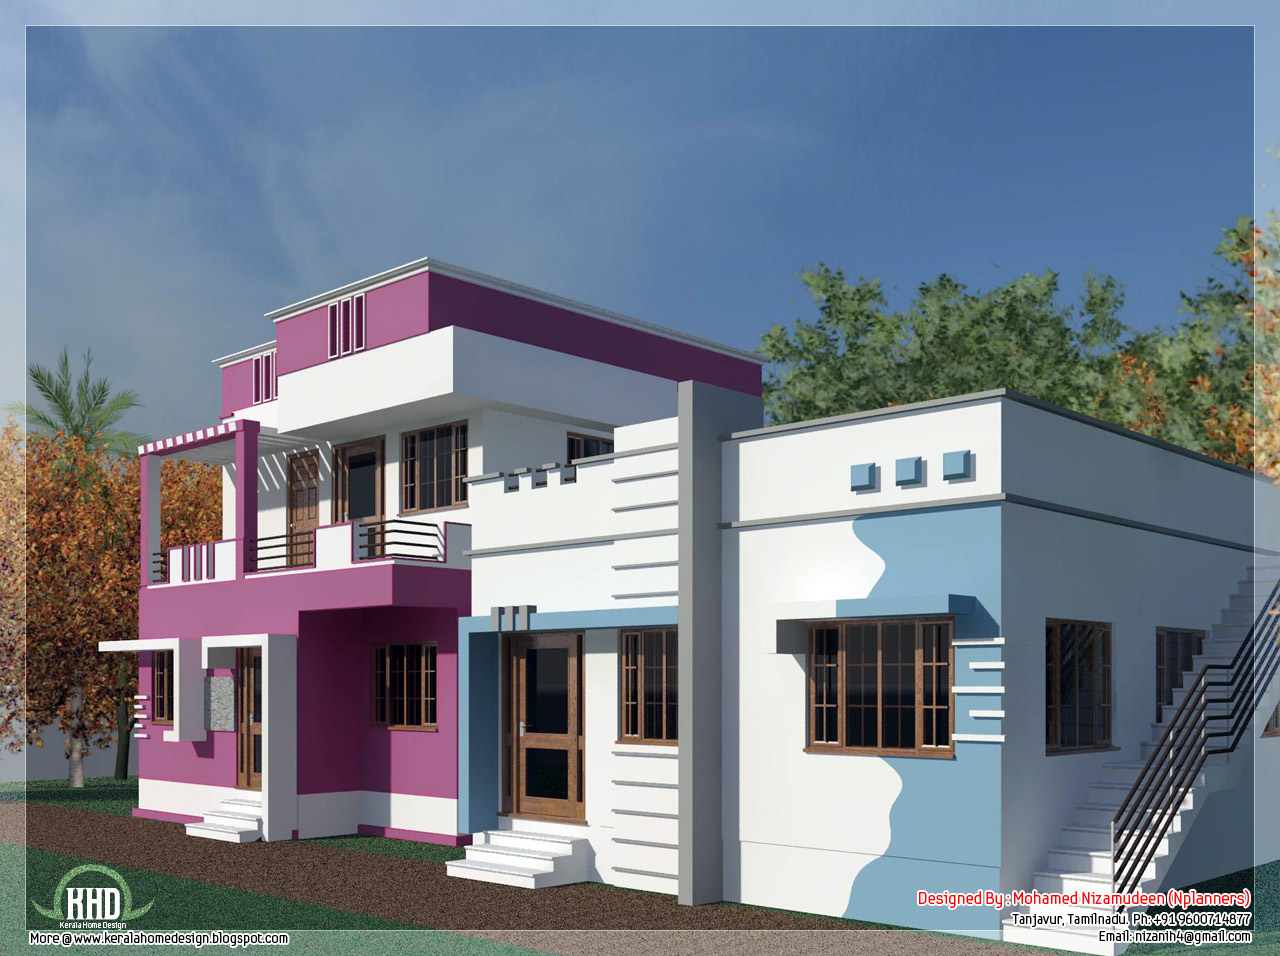 For more information about this Tamilnadu model house desgin